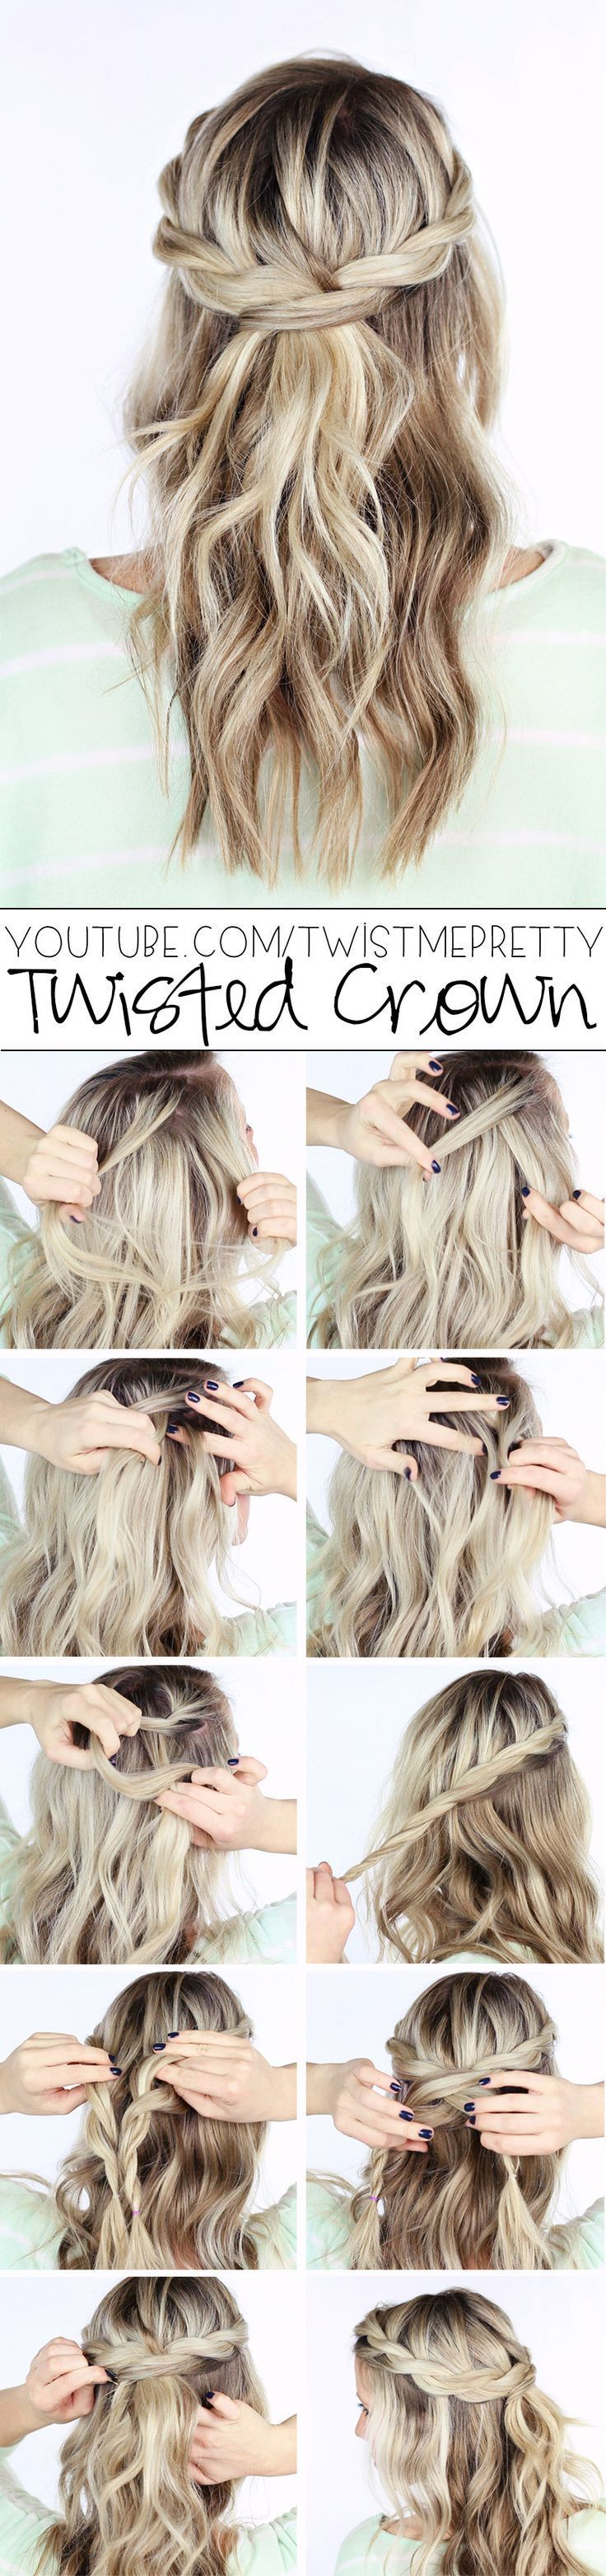 153 best curly hairstyles images on Pinterest | Braids, Curls and ...